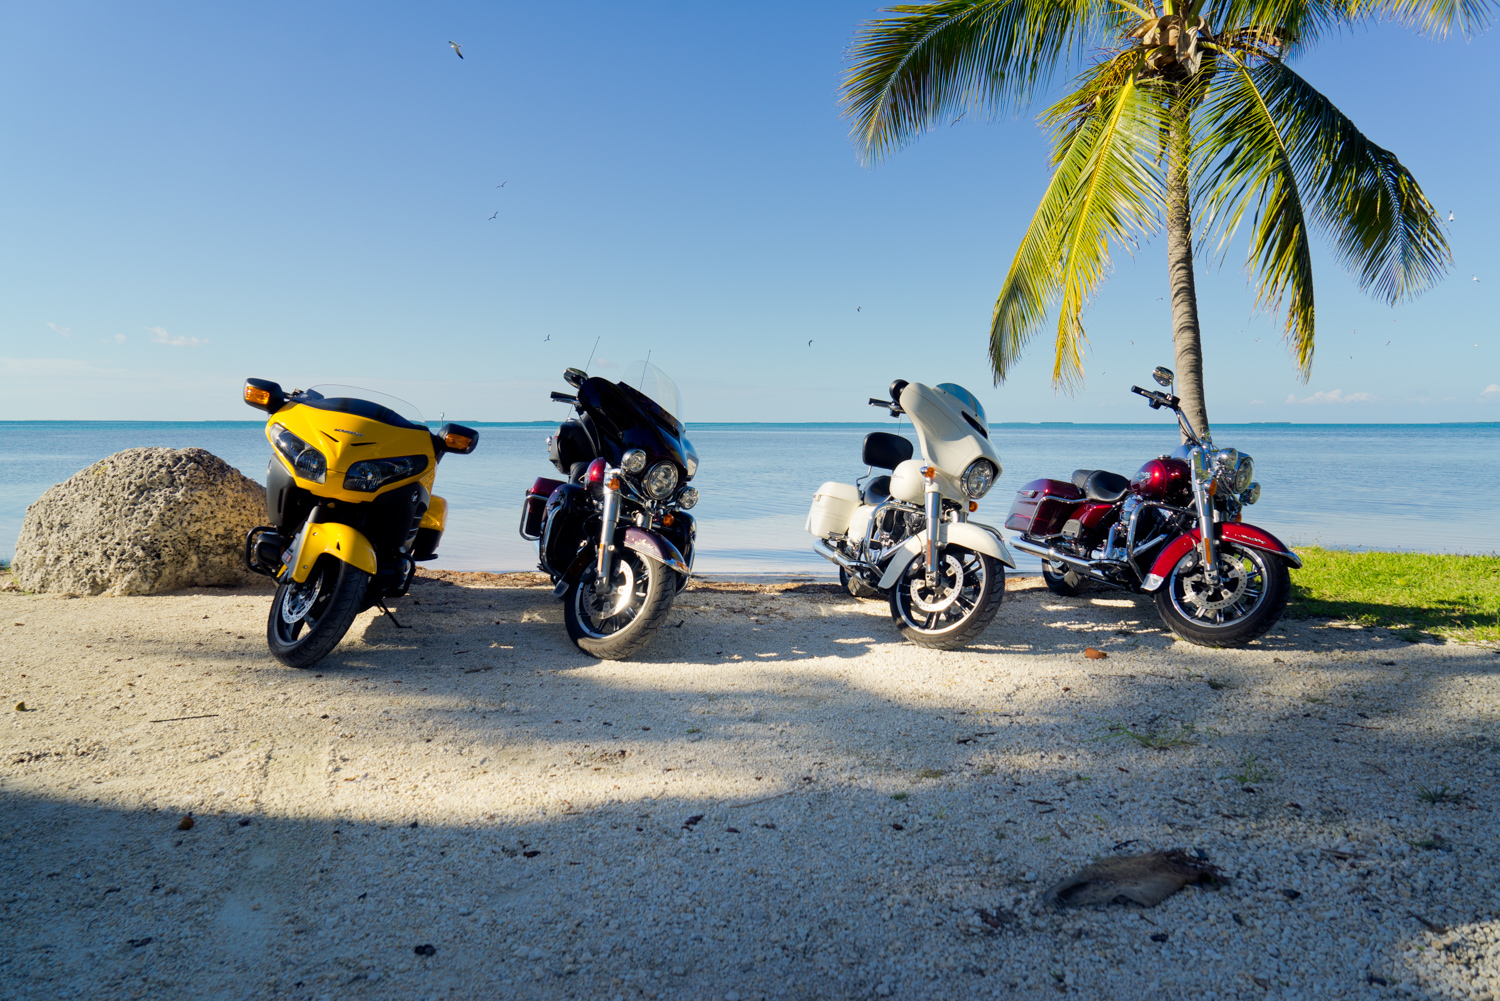 Motorcycle rental fort lauderdale harley rental fort lauderdale eaglerider Motor cycle rentals